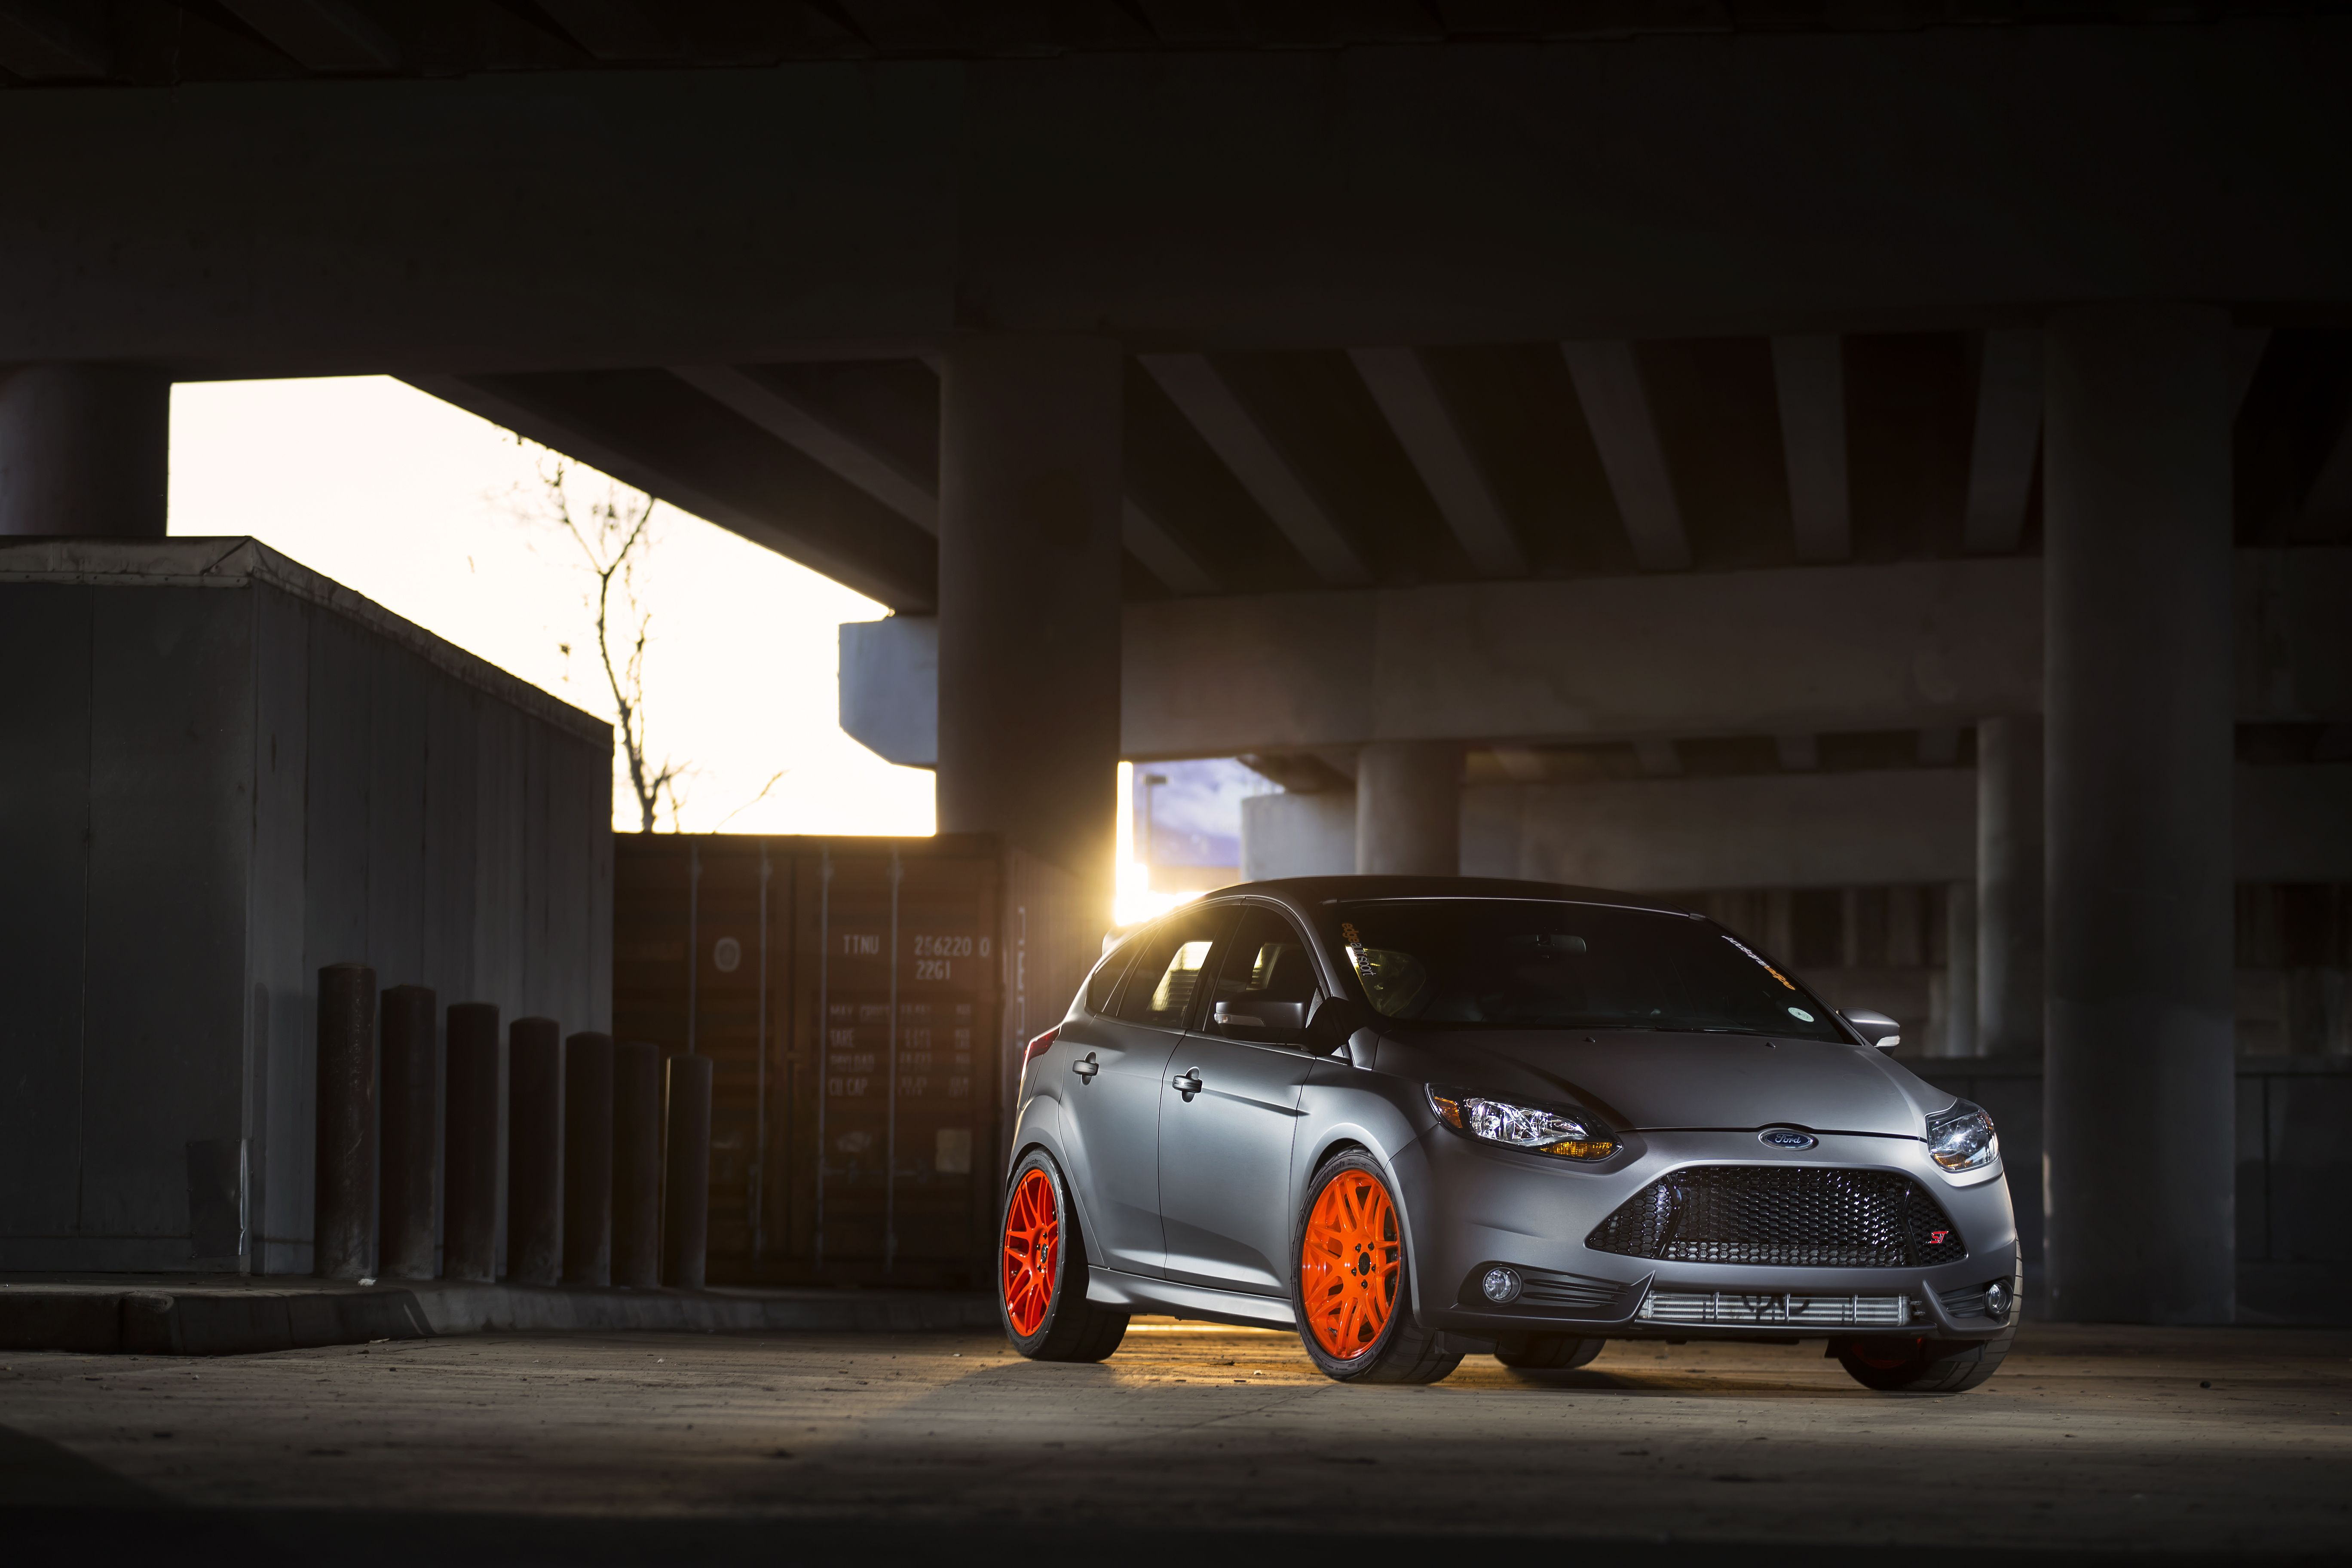 Ford focus st mk3 in moondust silver color with orange alloy wheels under the bridge